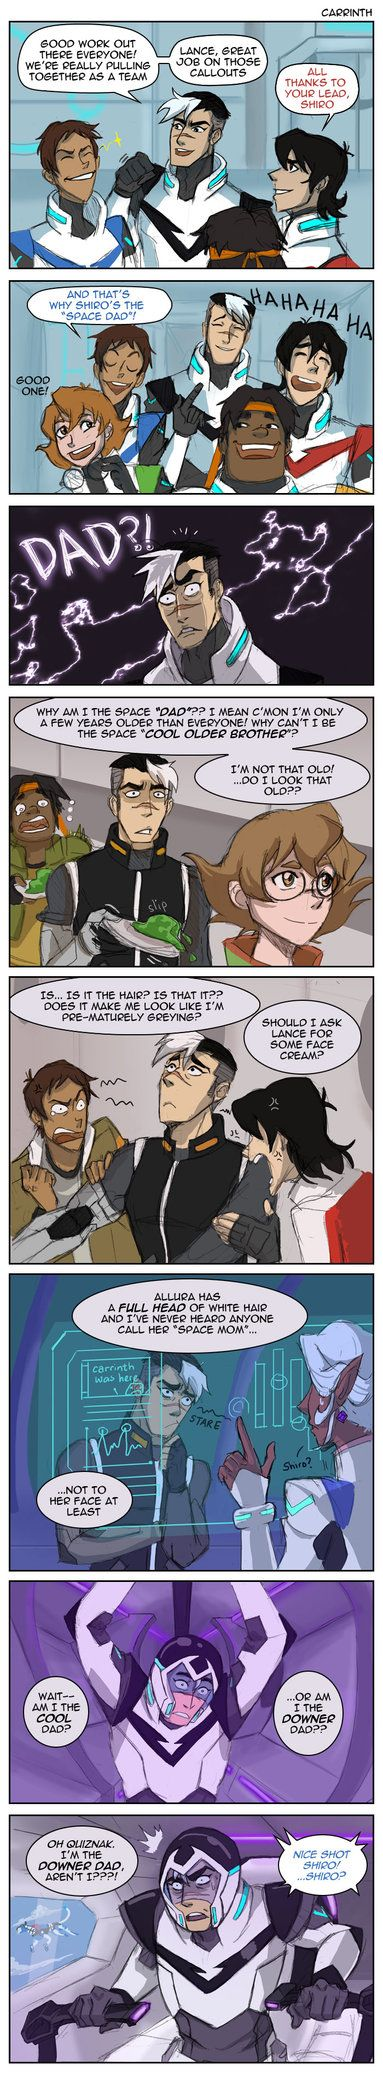 Early 20s adult (?) does not react graciously to elderly nickname bestowed by bunch of teenagers. He's reached that special age where you become weirdly sensitive/secretive about your age. Tumblr:&...<<< I think shiro is canon 23 (I may be mistaken) XD omg love this